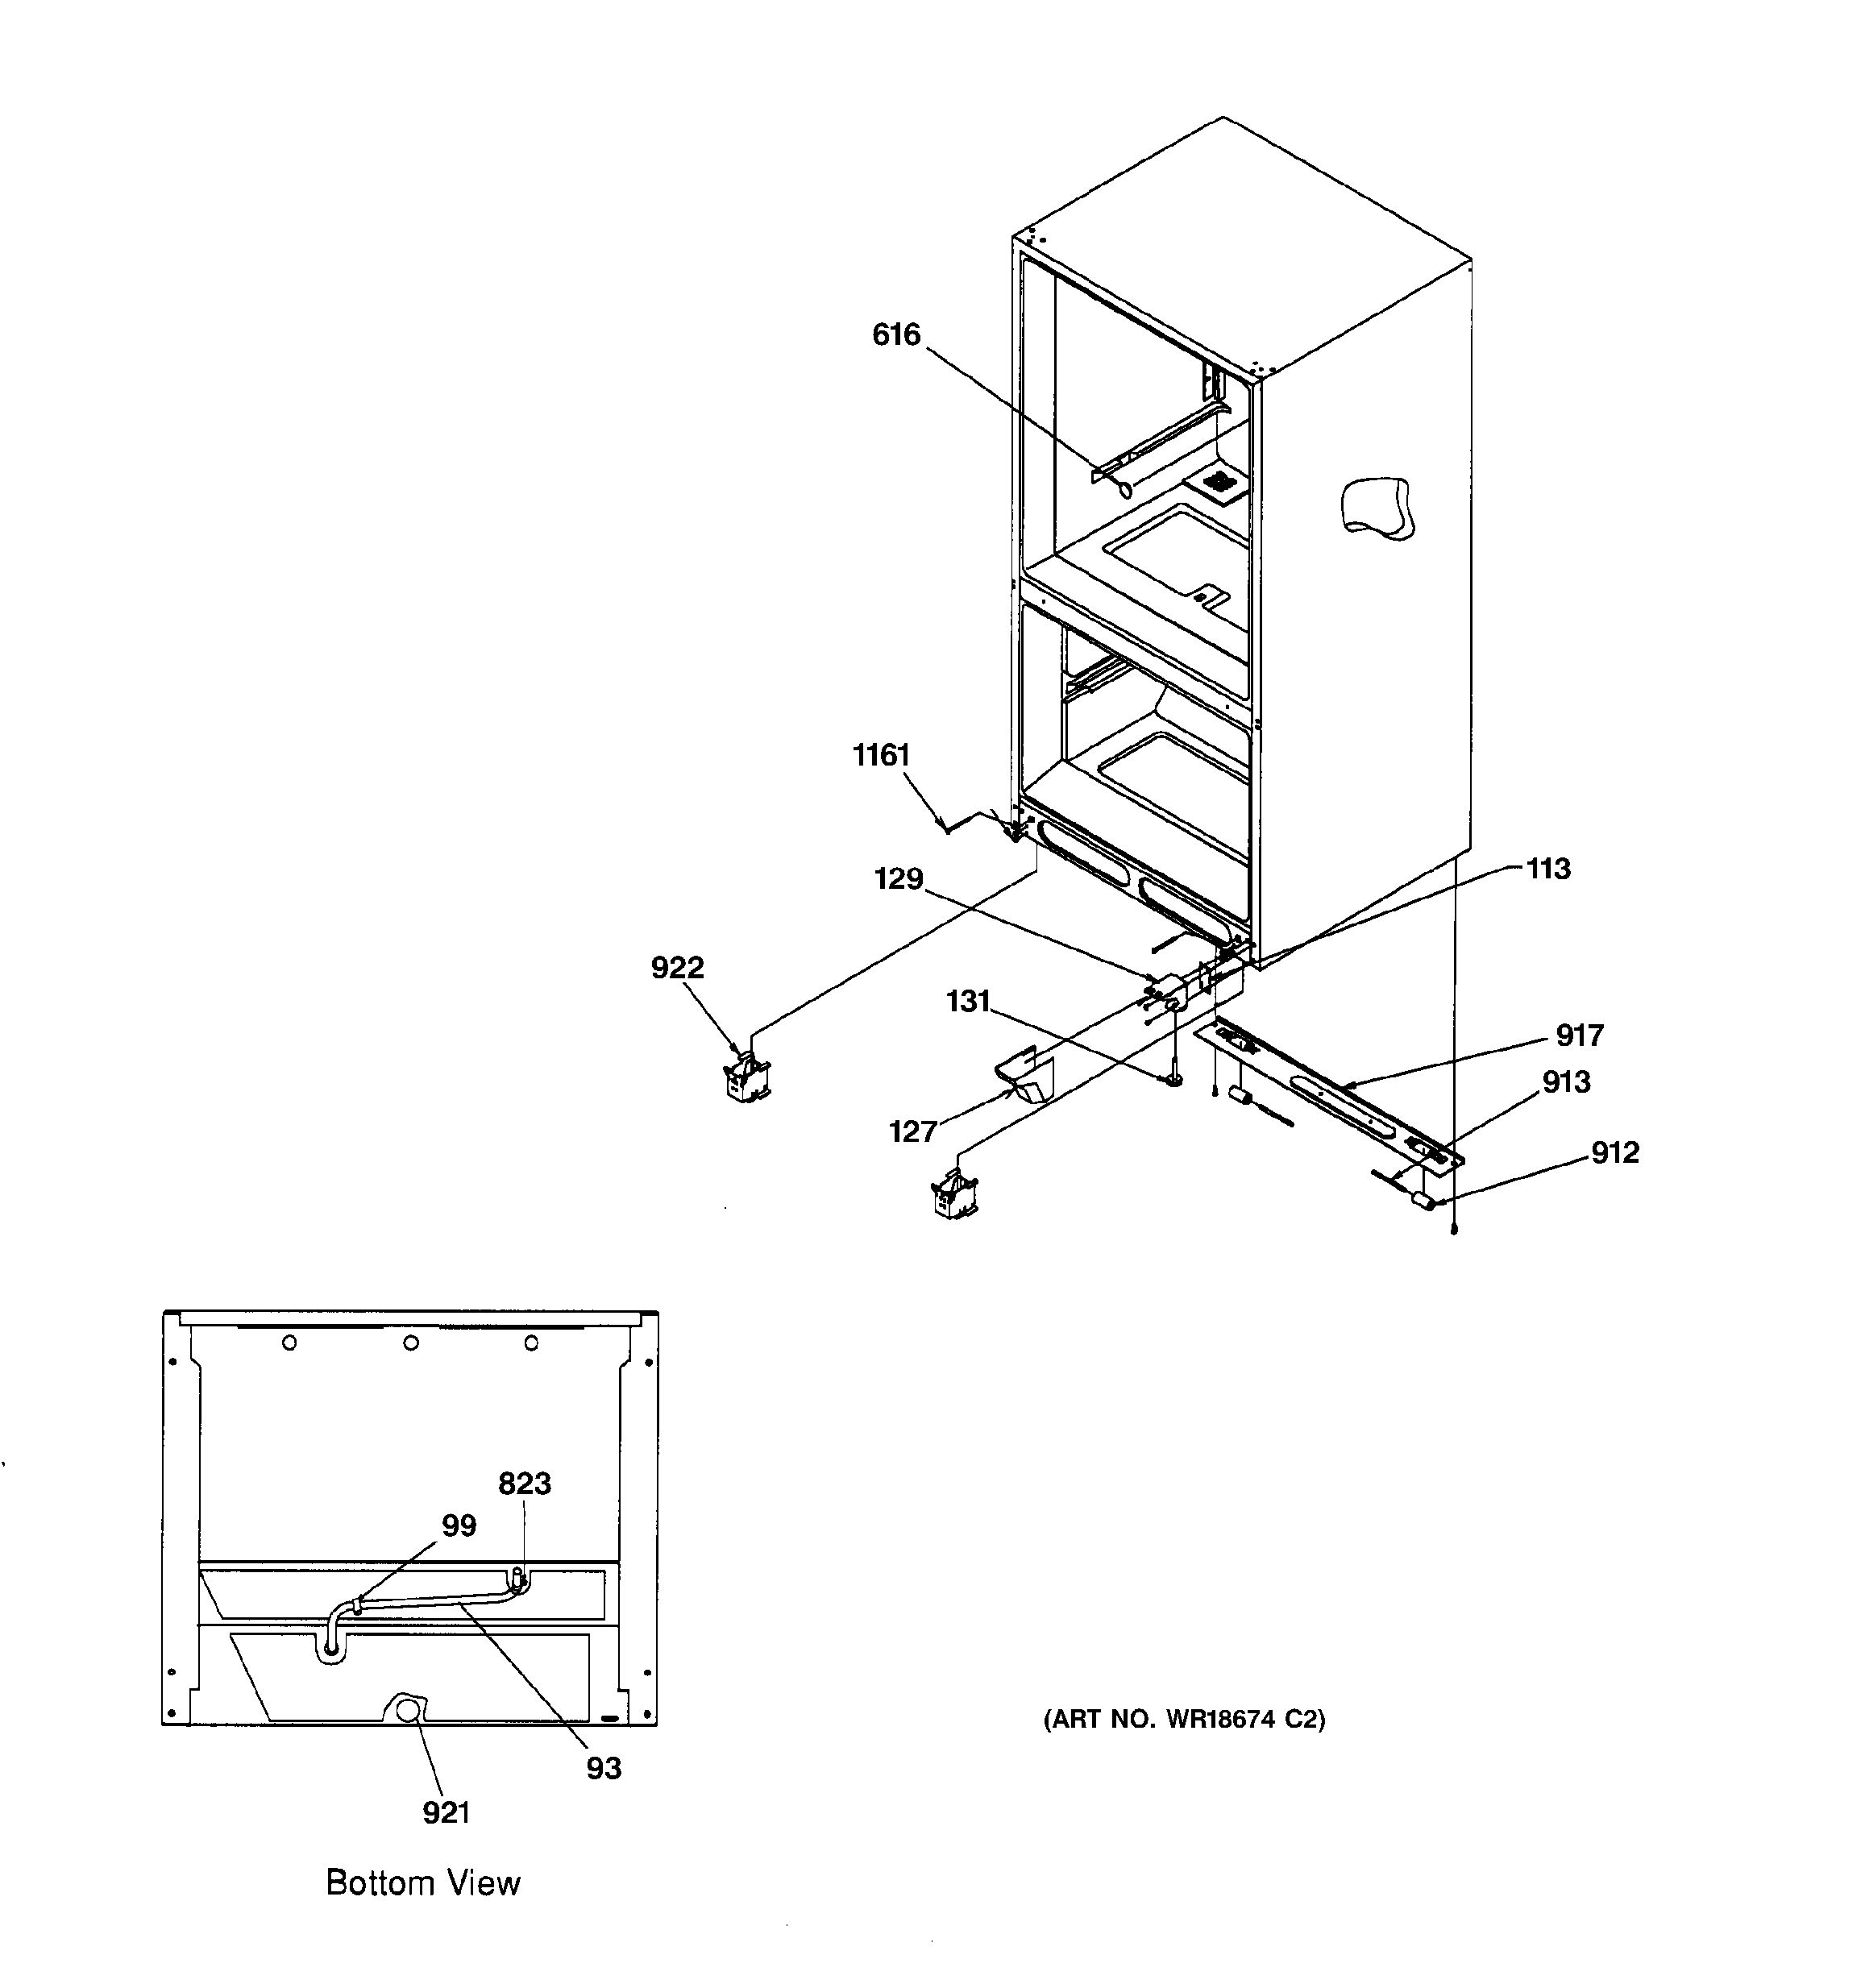 Assembly View For Insulation Amp Roller Assembly